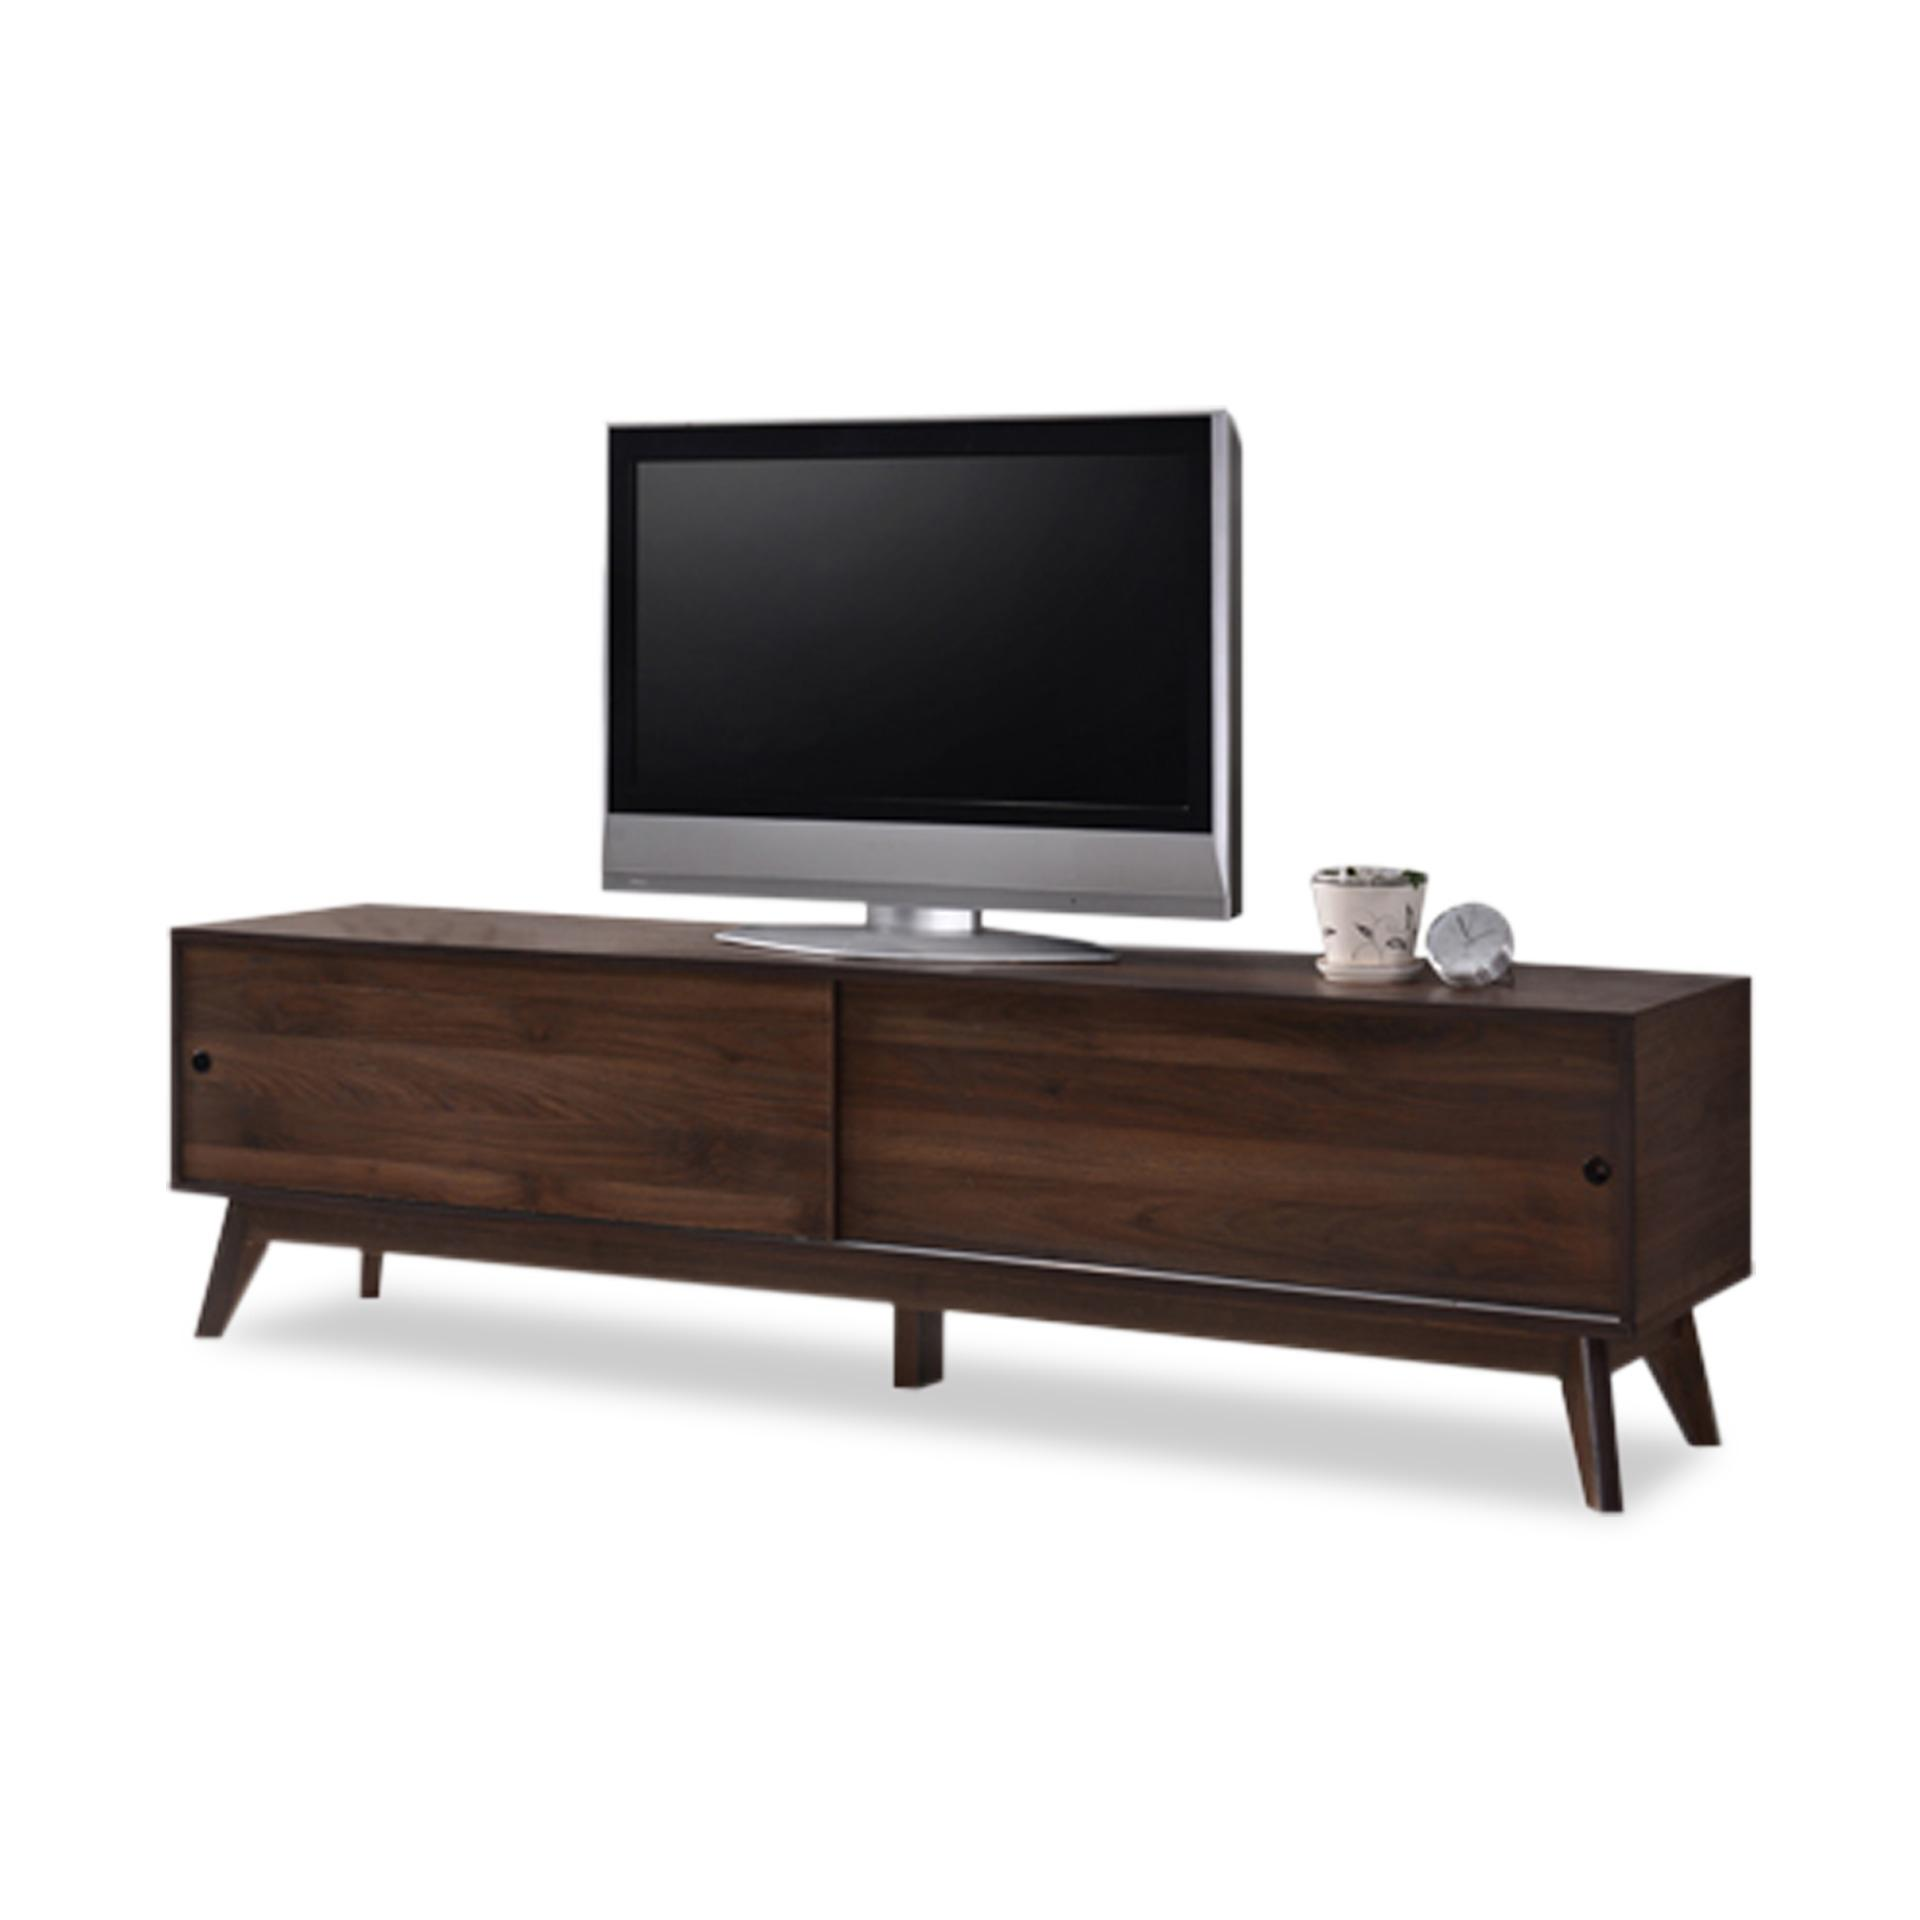 Jasper TV Cabinet 1.8m (FREE DELIVERY)(FREE ASSEMBLY)